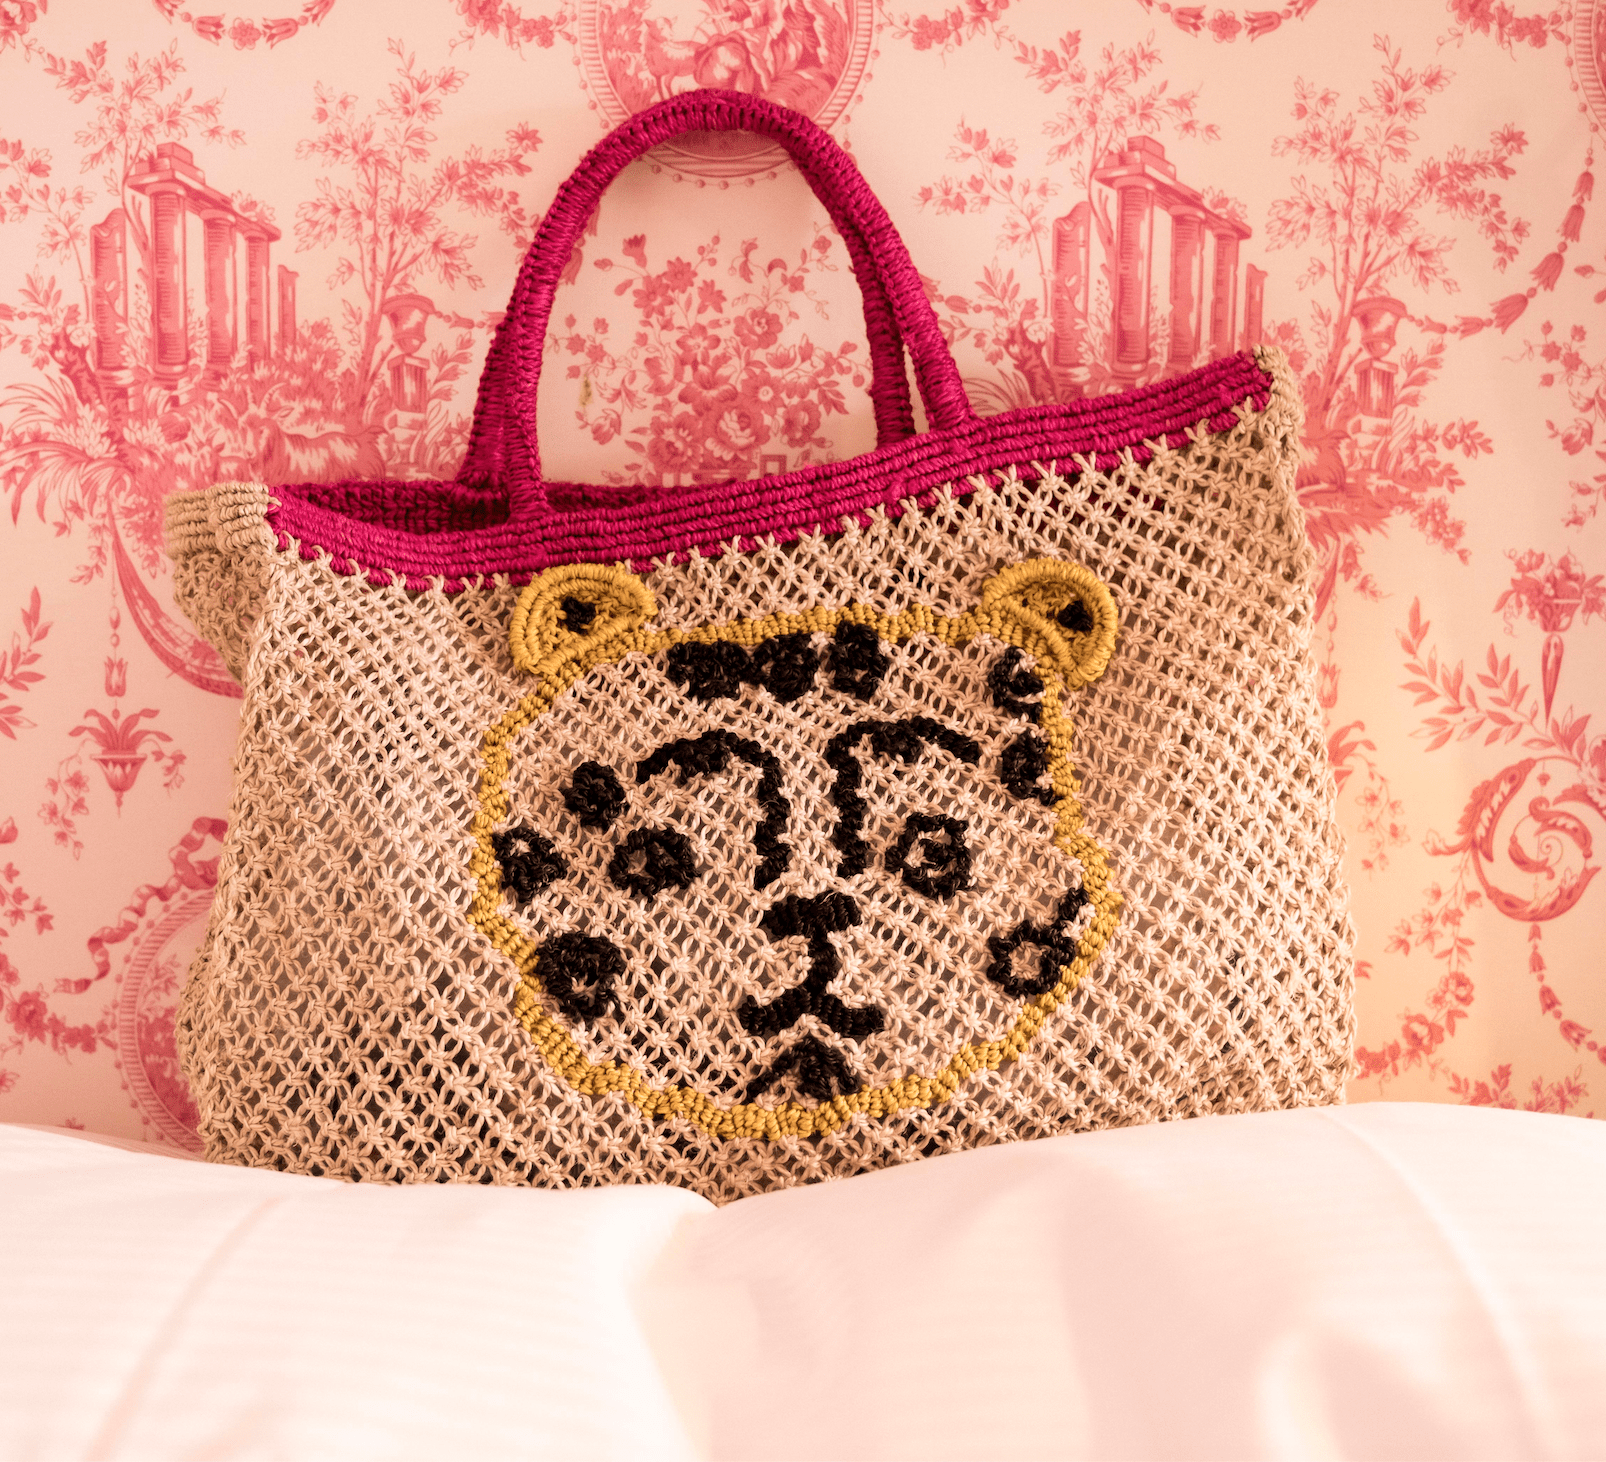 Leopard handcrafted bag - The Jacksons